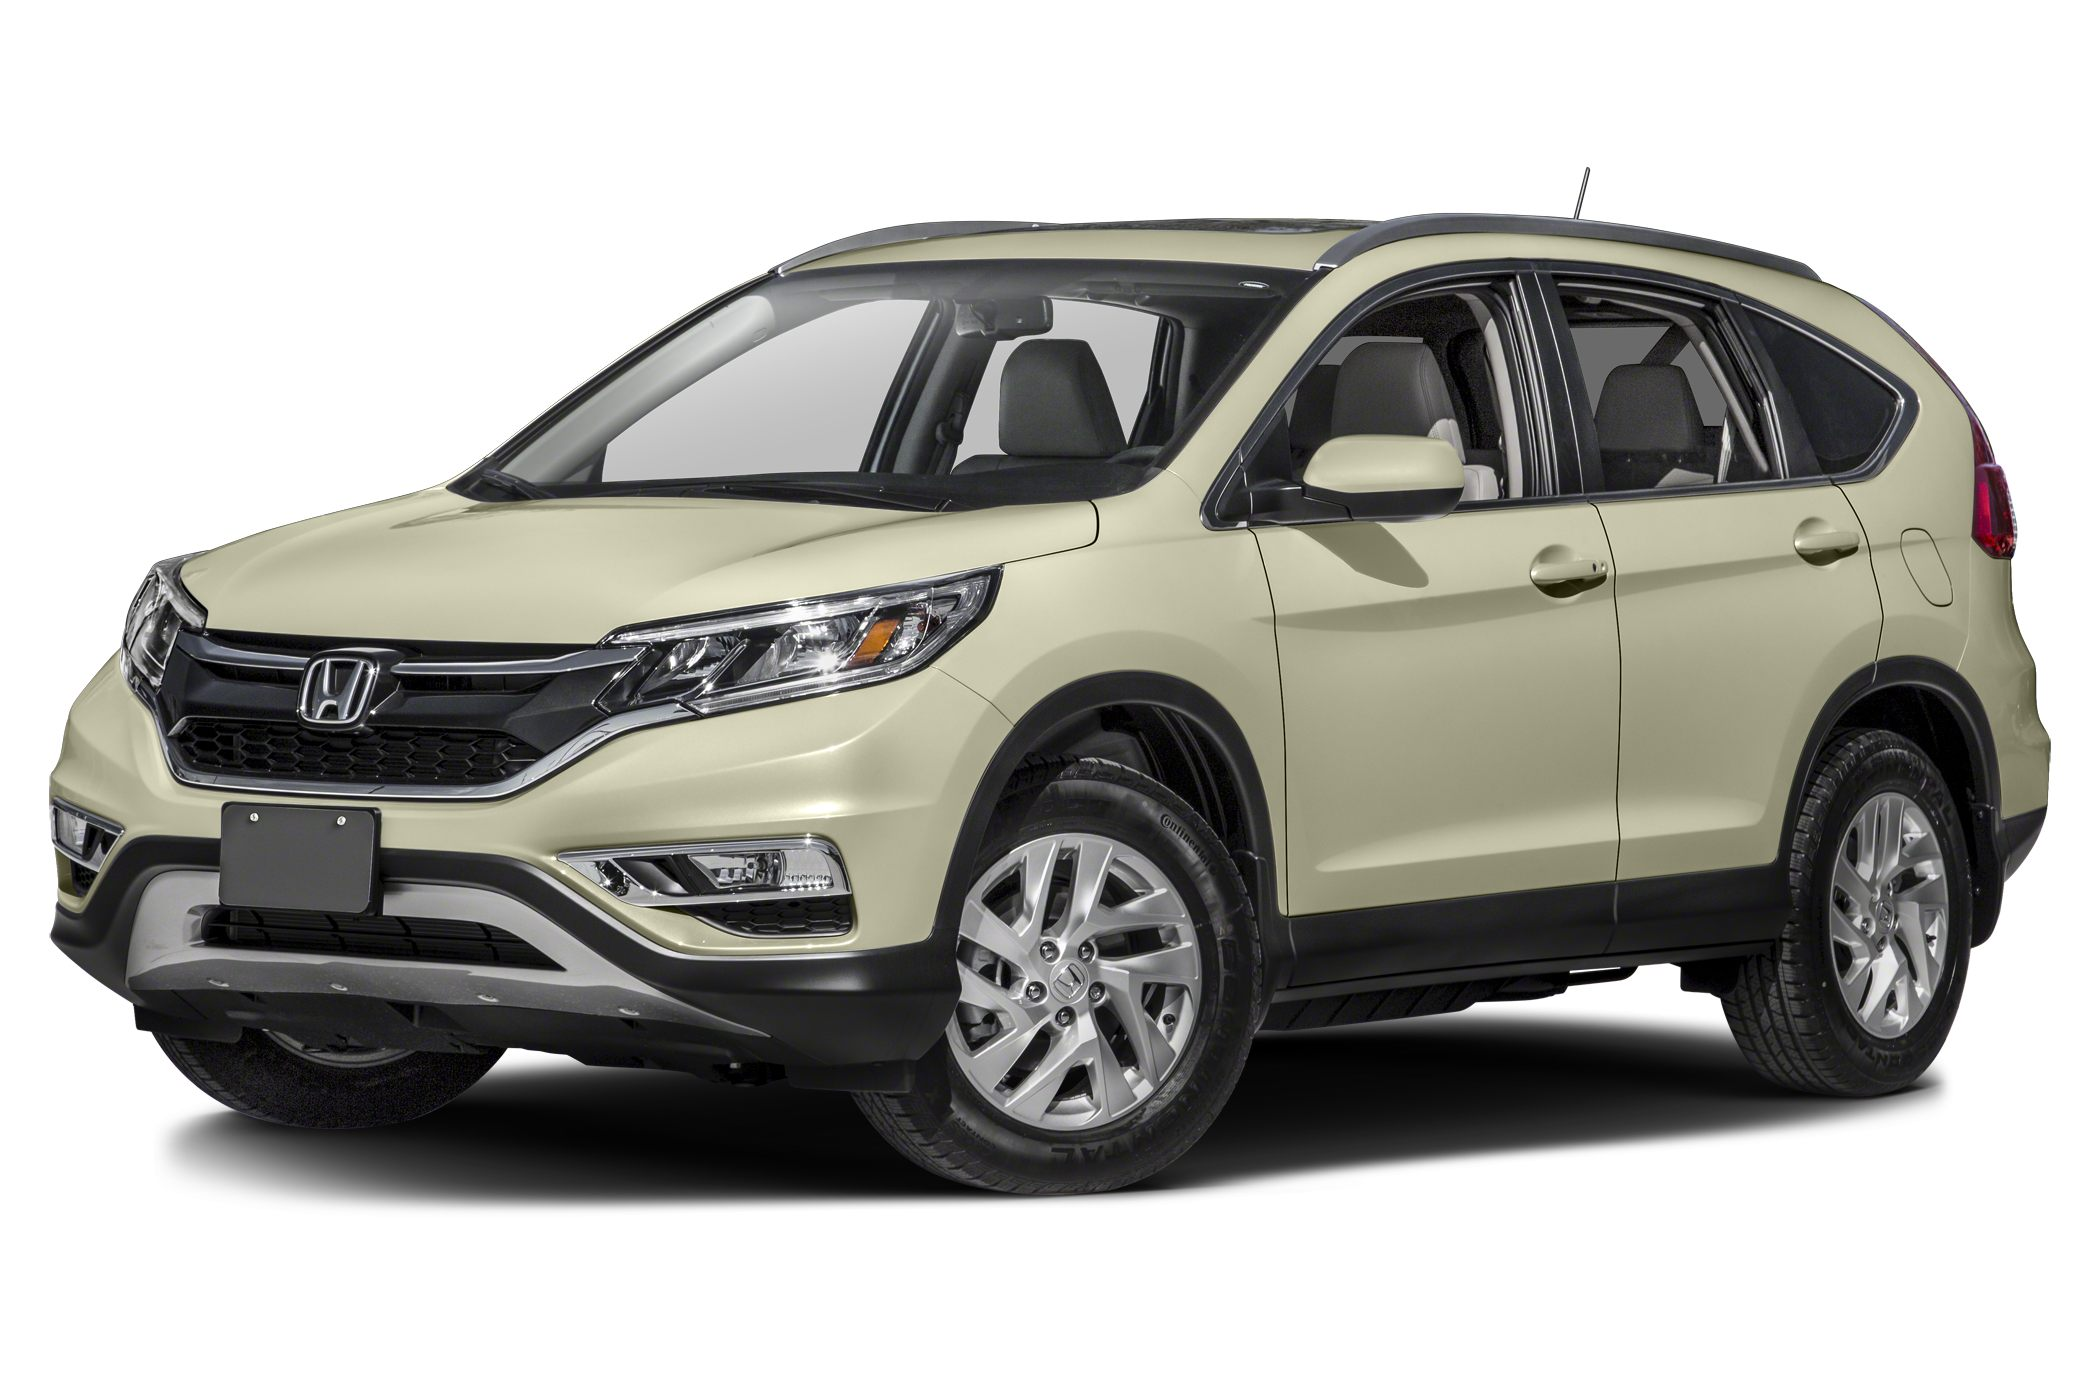 2016 Honda CR-V EX-L Talk about a deal Hurry and take advantage now This great 2016 Honda CR-V i